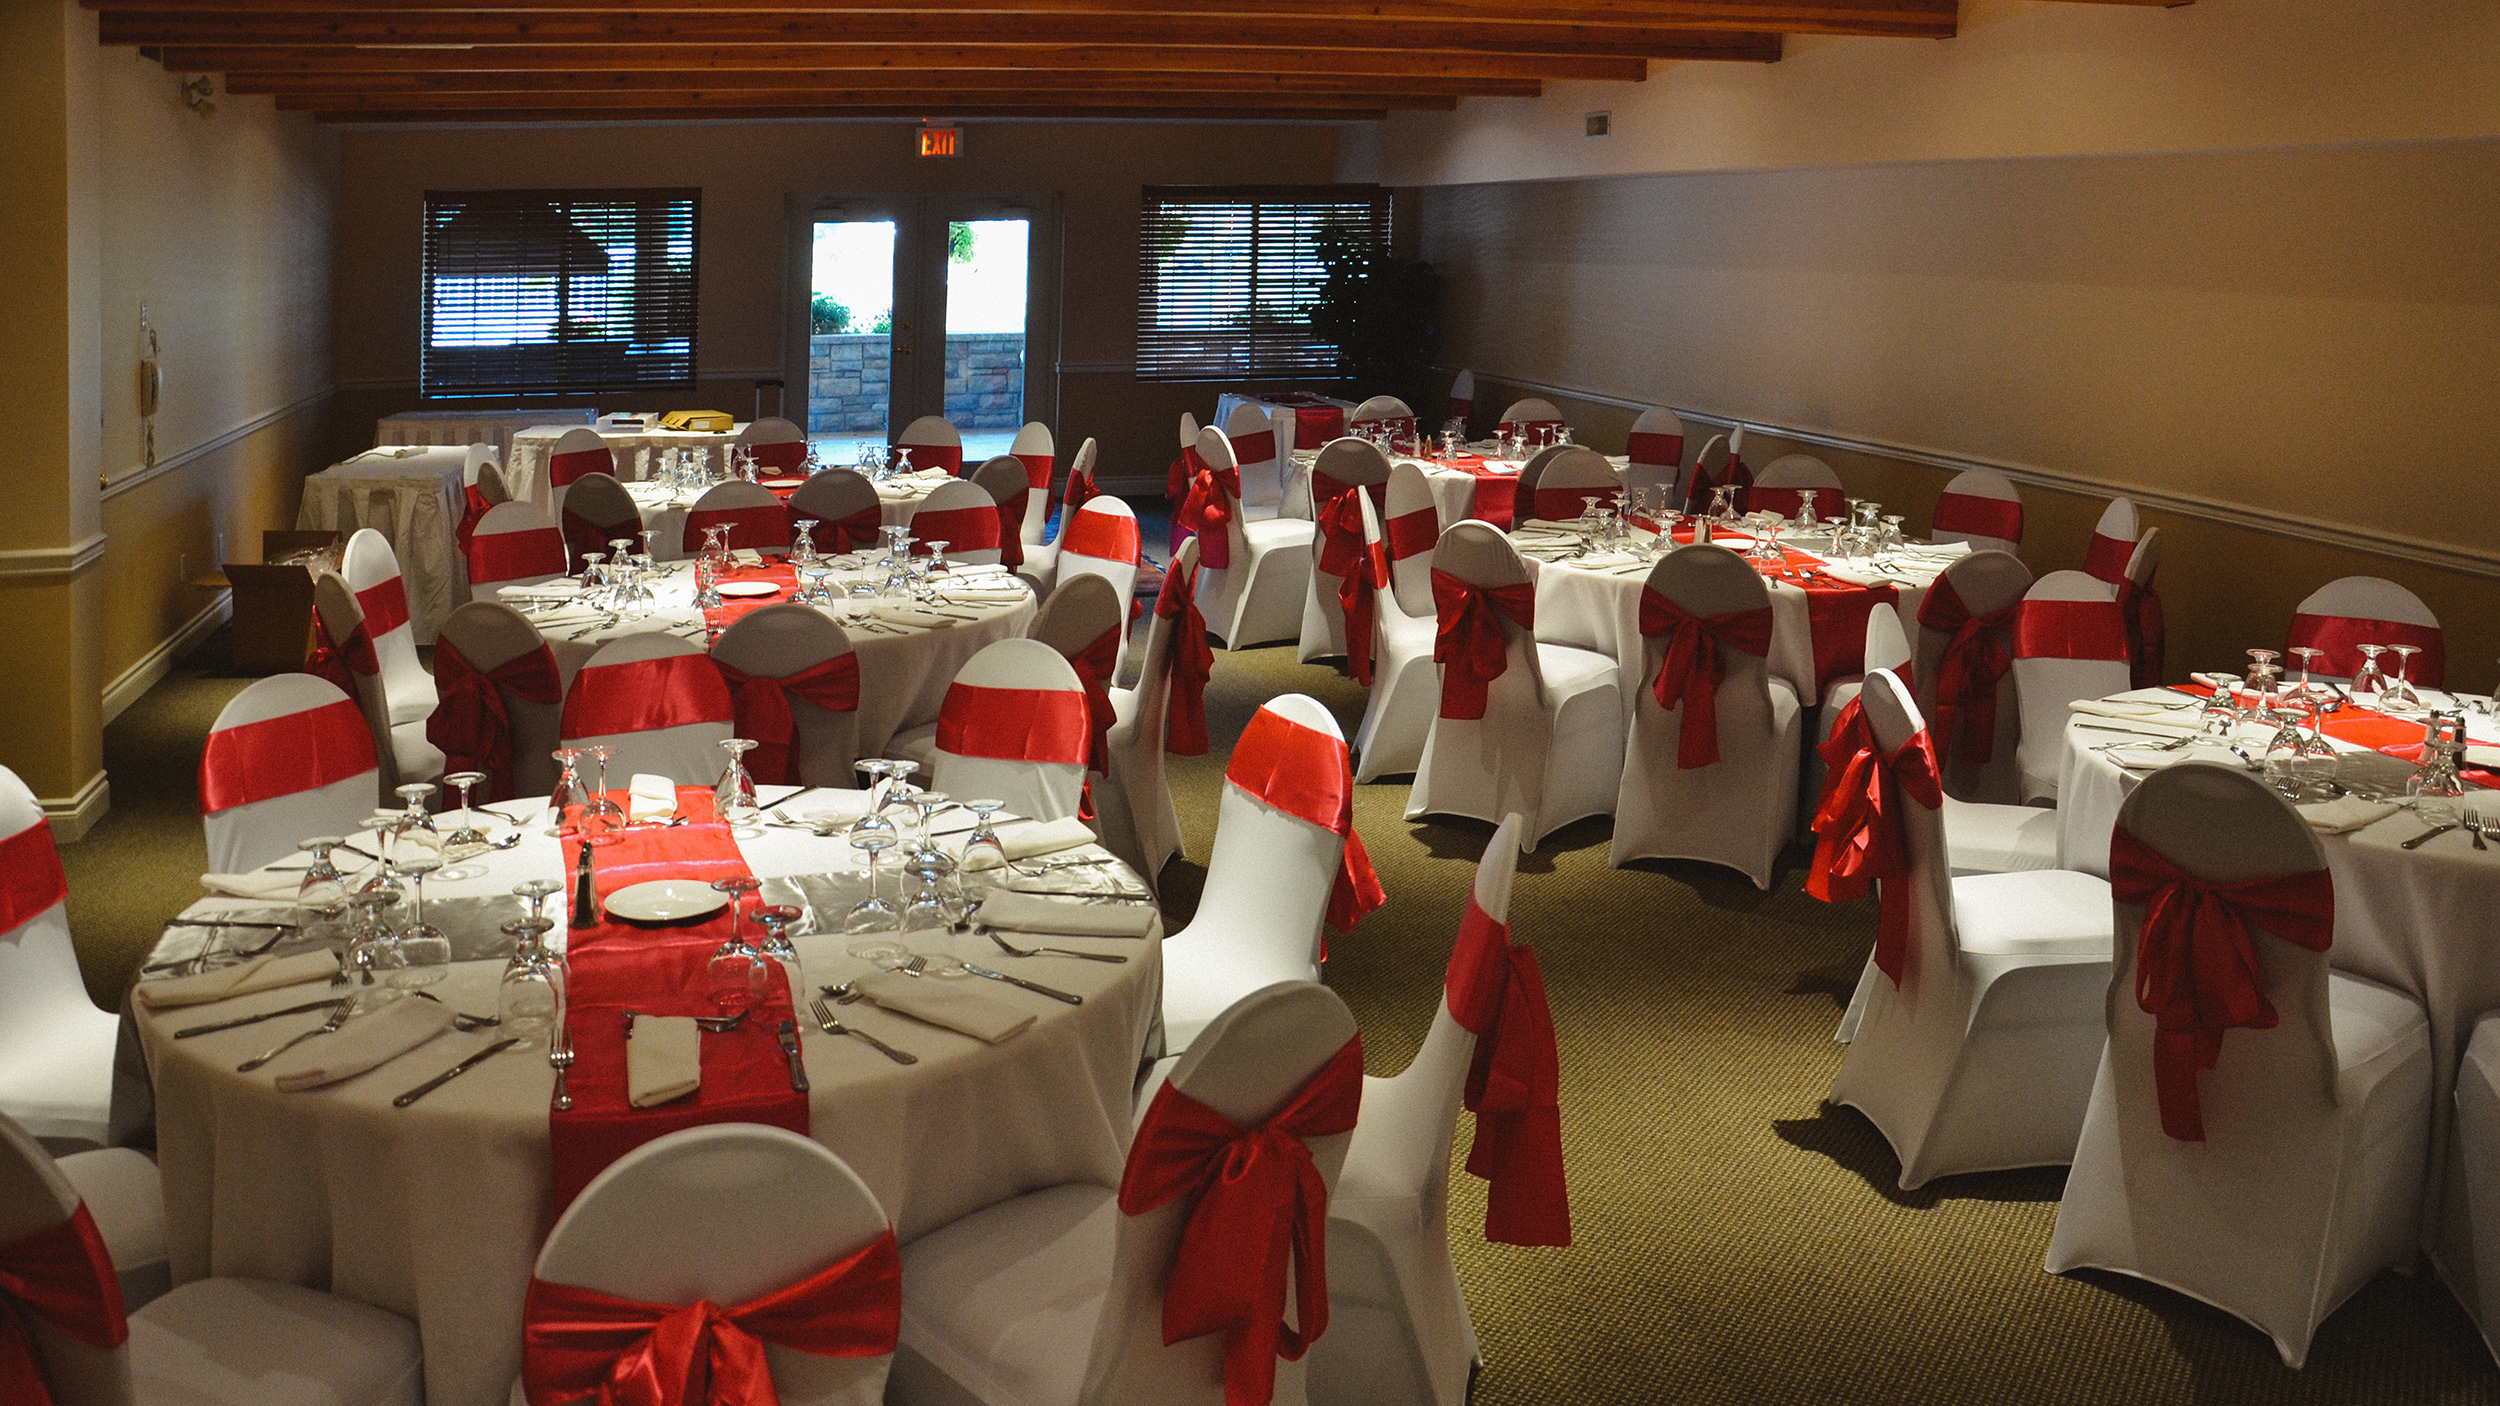 Wedding decorations set-up in the Kentucky room at the South Thompson Inn & Conference Centre.